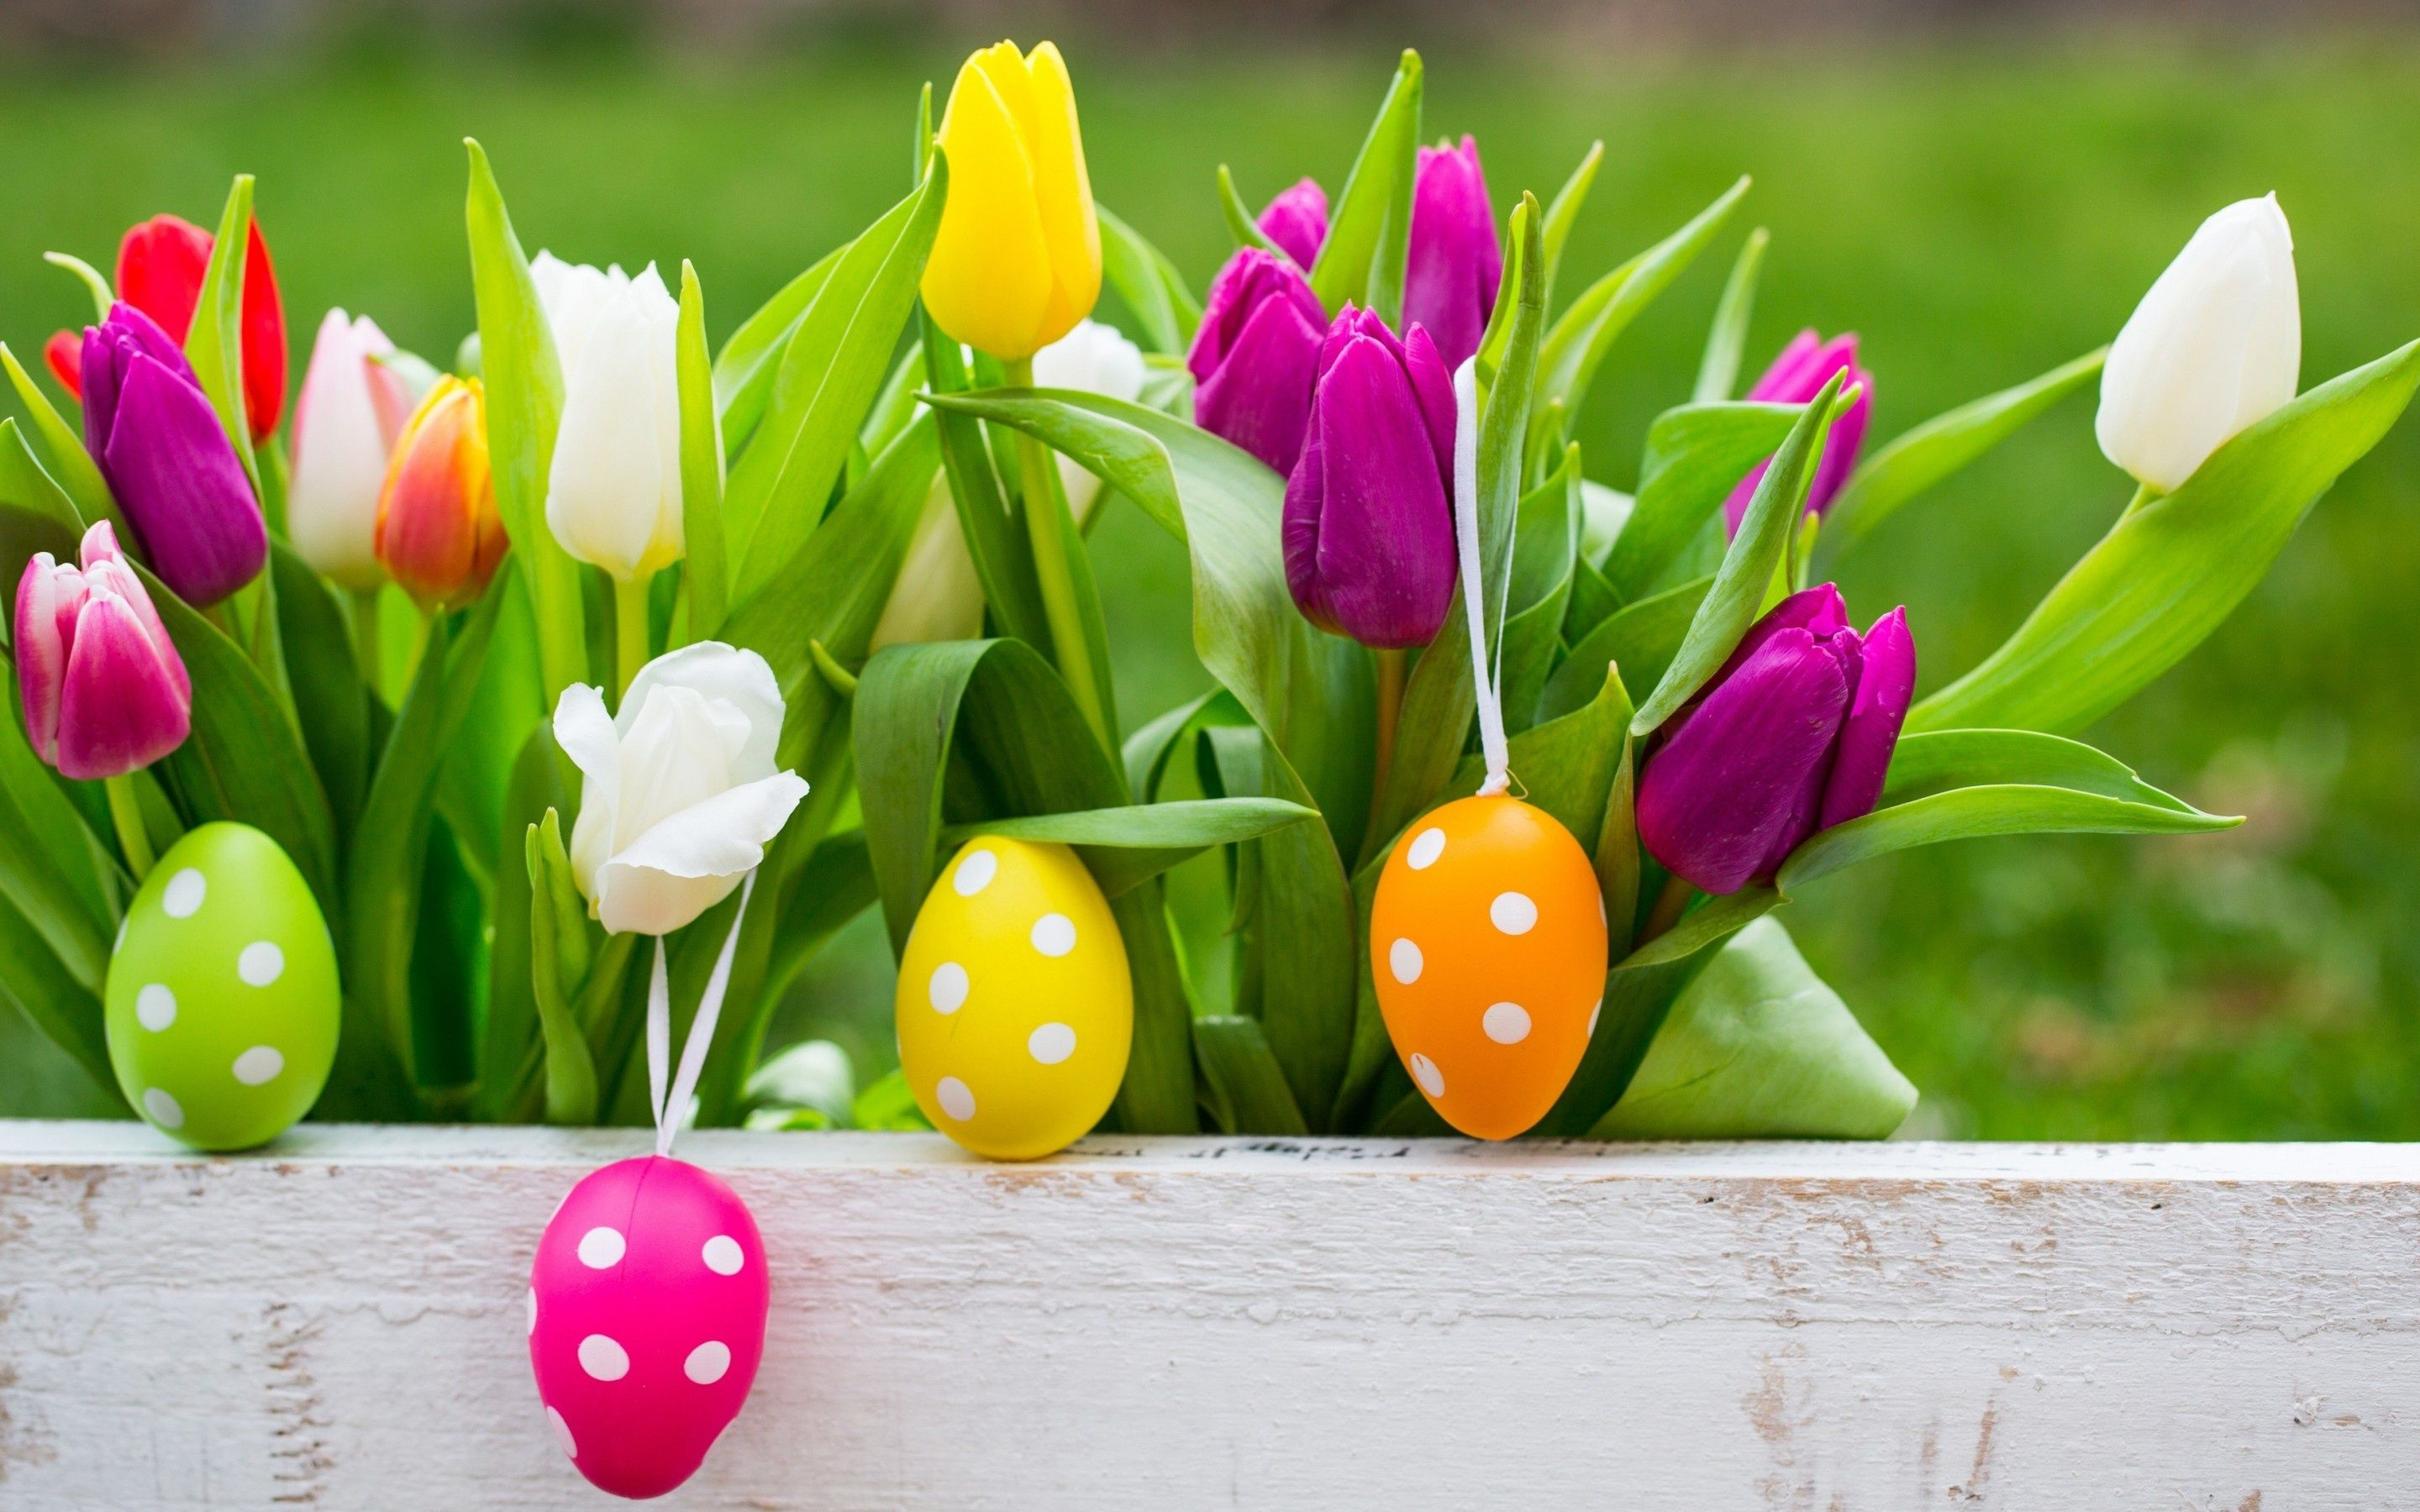 Easter Eggs On Flowers Background Wallpapers   2880x1800   1042192     Easter Eggs On Flowers Background Wallpapers   2880x1800   1042192